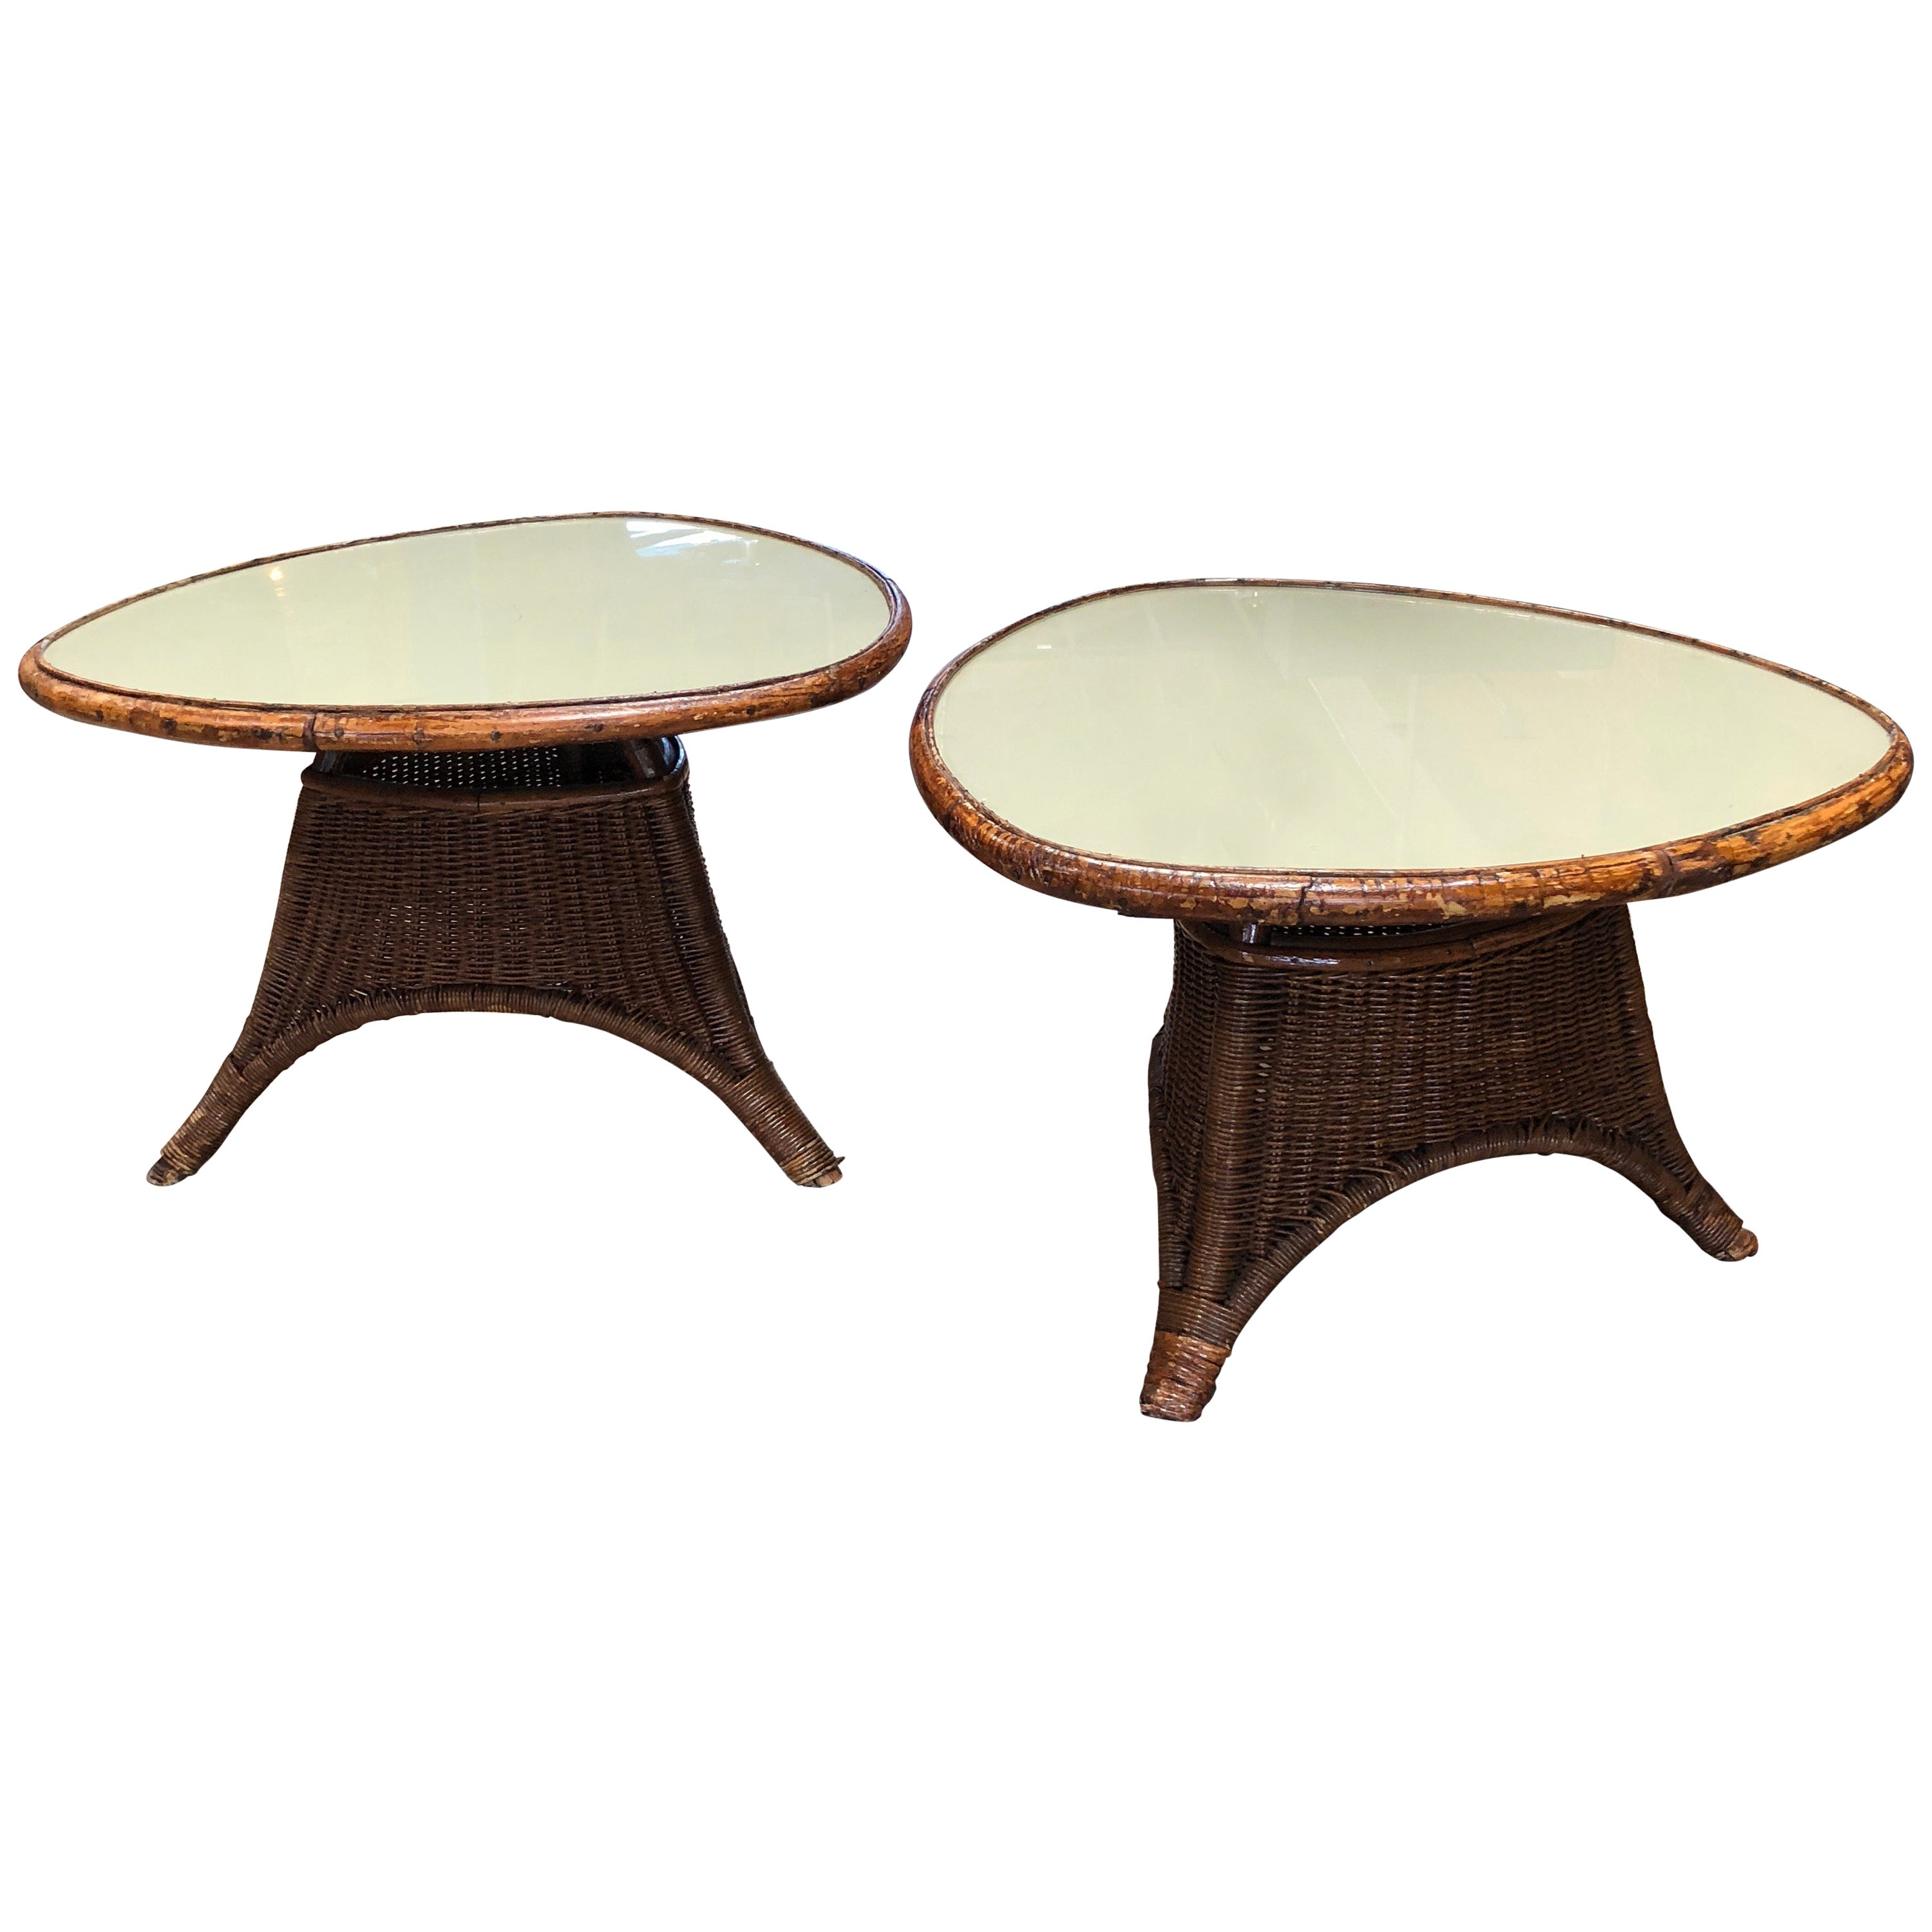 Weird Coffee Tables Pair Of Italian Coffee Tables In Rattan And Glass 1960s